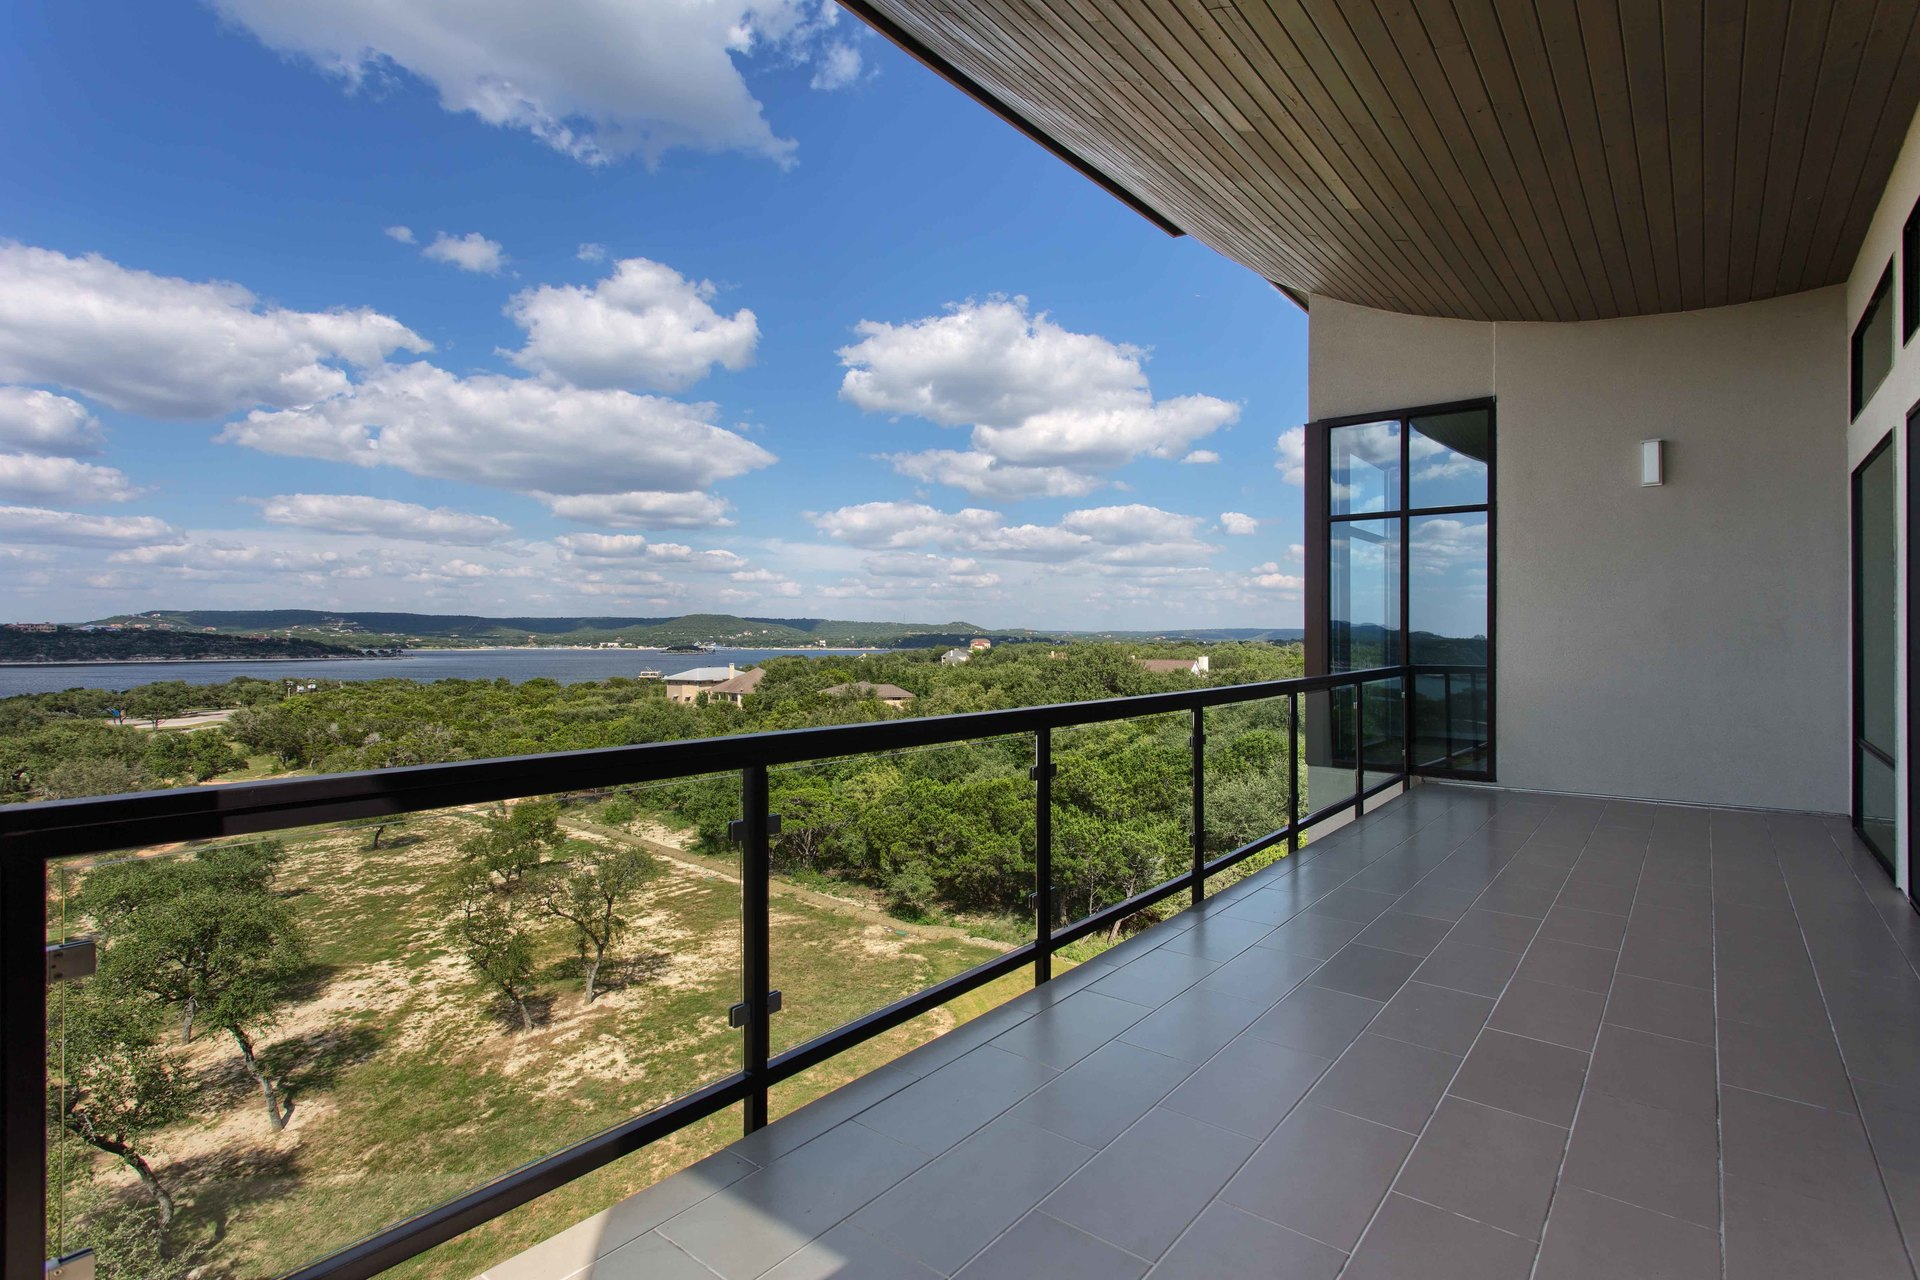 Condo room balcony at the Waterfall Condos on Lake Travis by Cornerstone Architects.